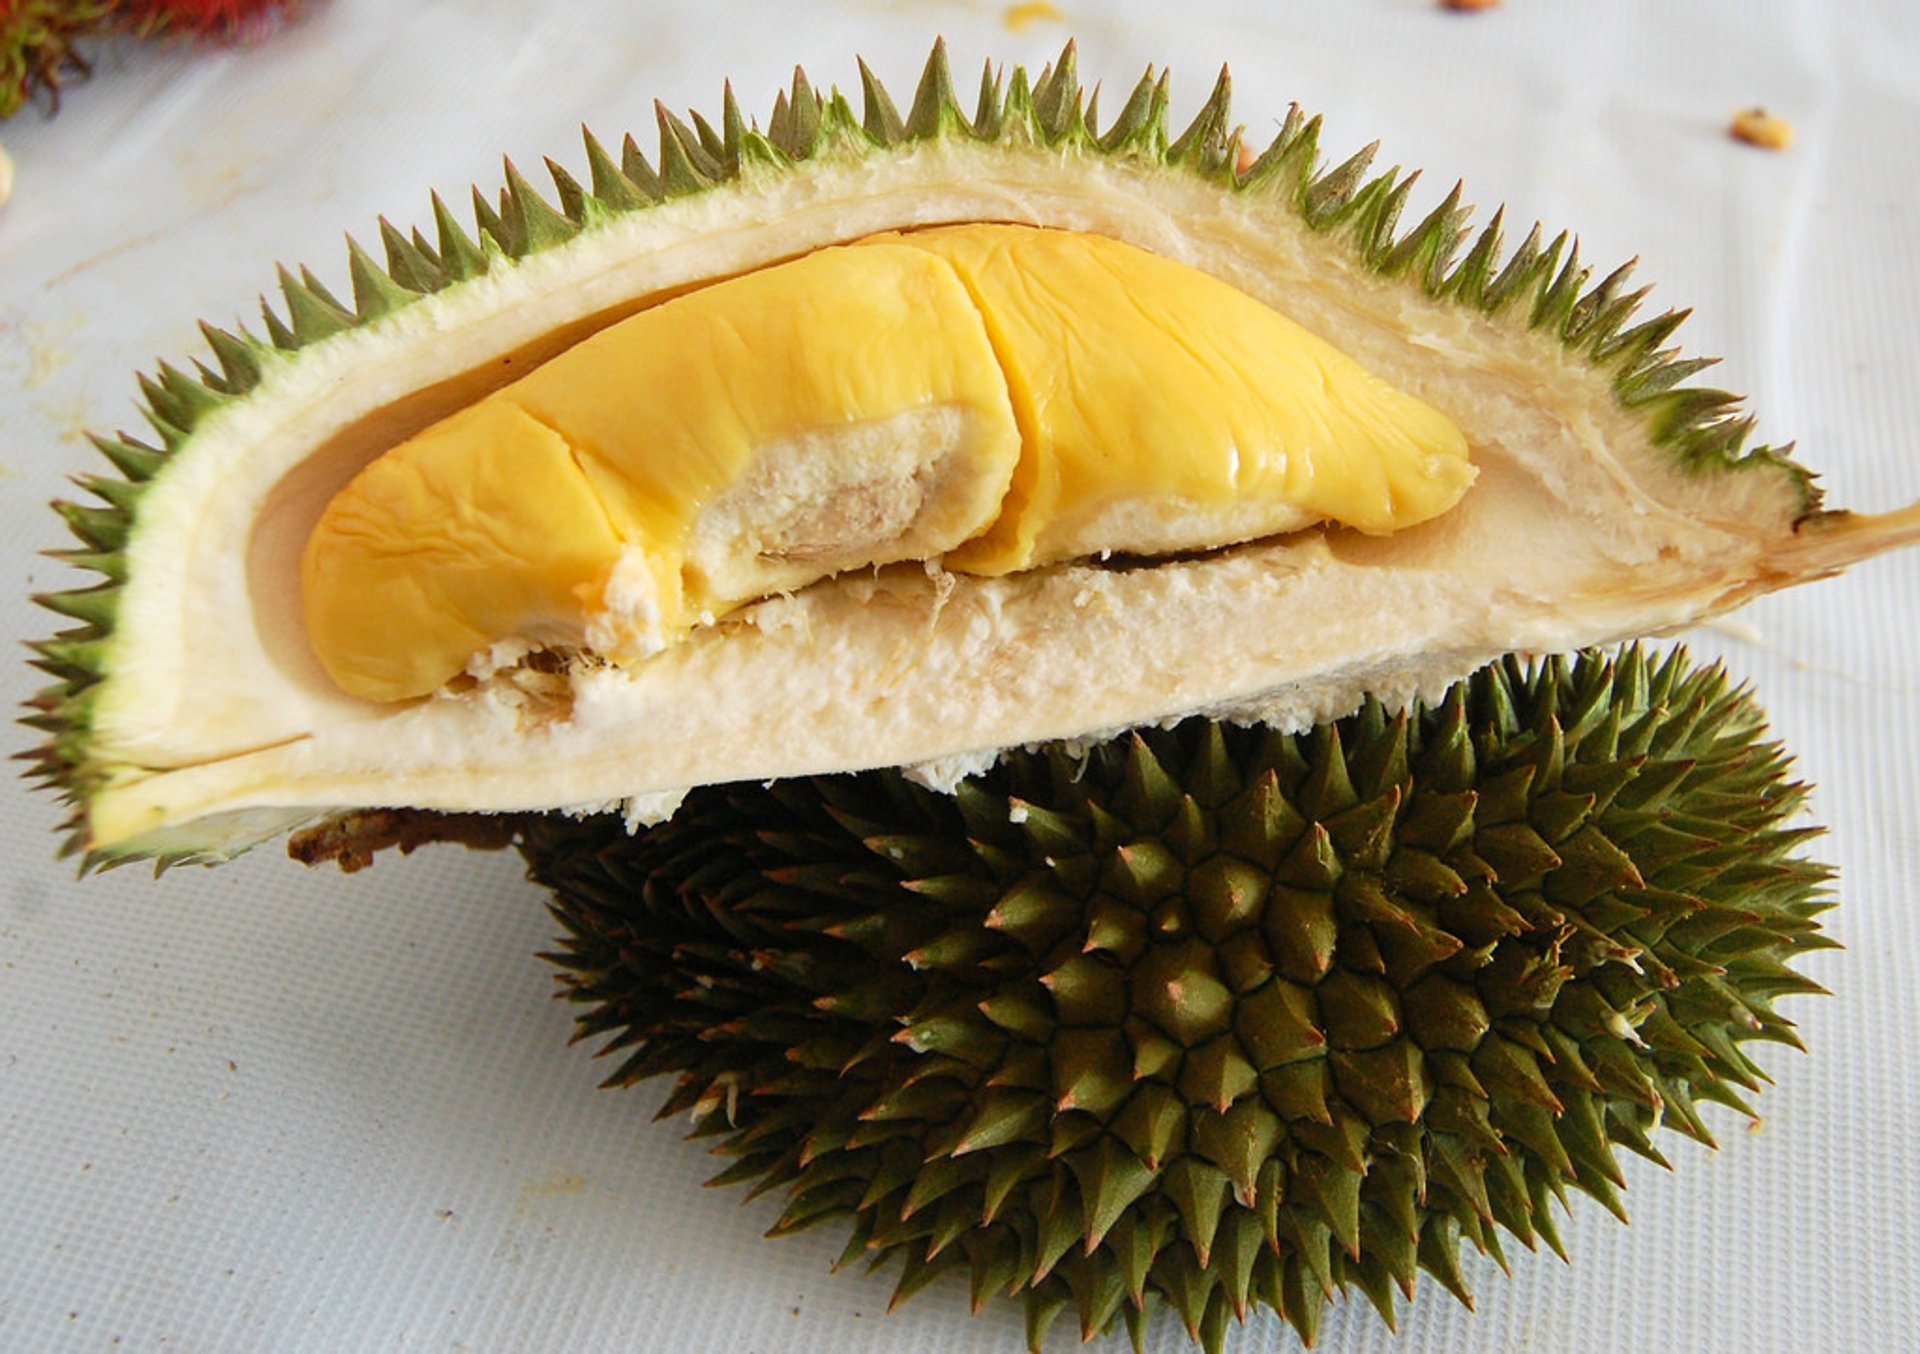 Durian in Bali 2019 - Best Time